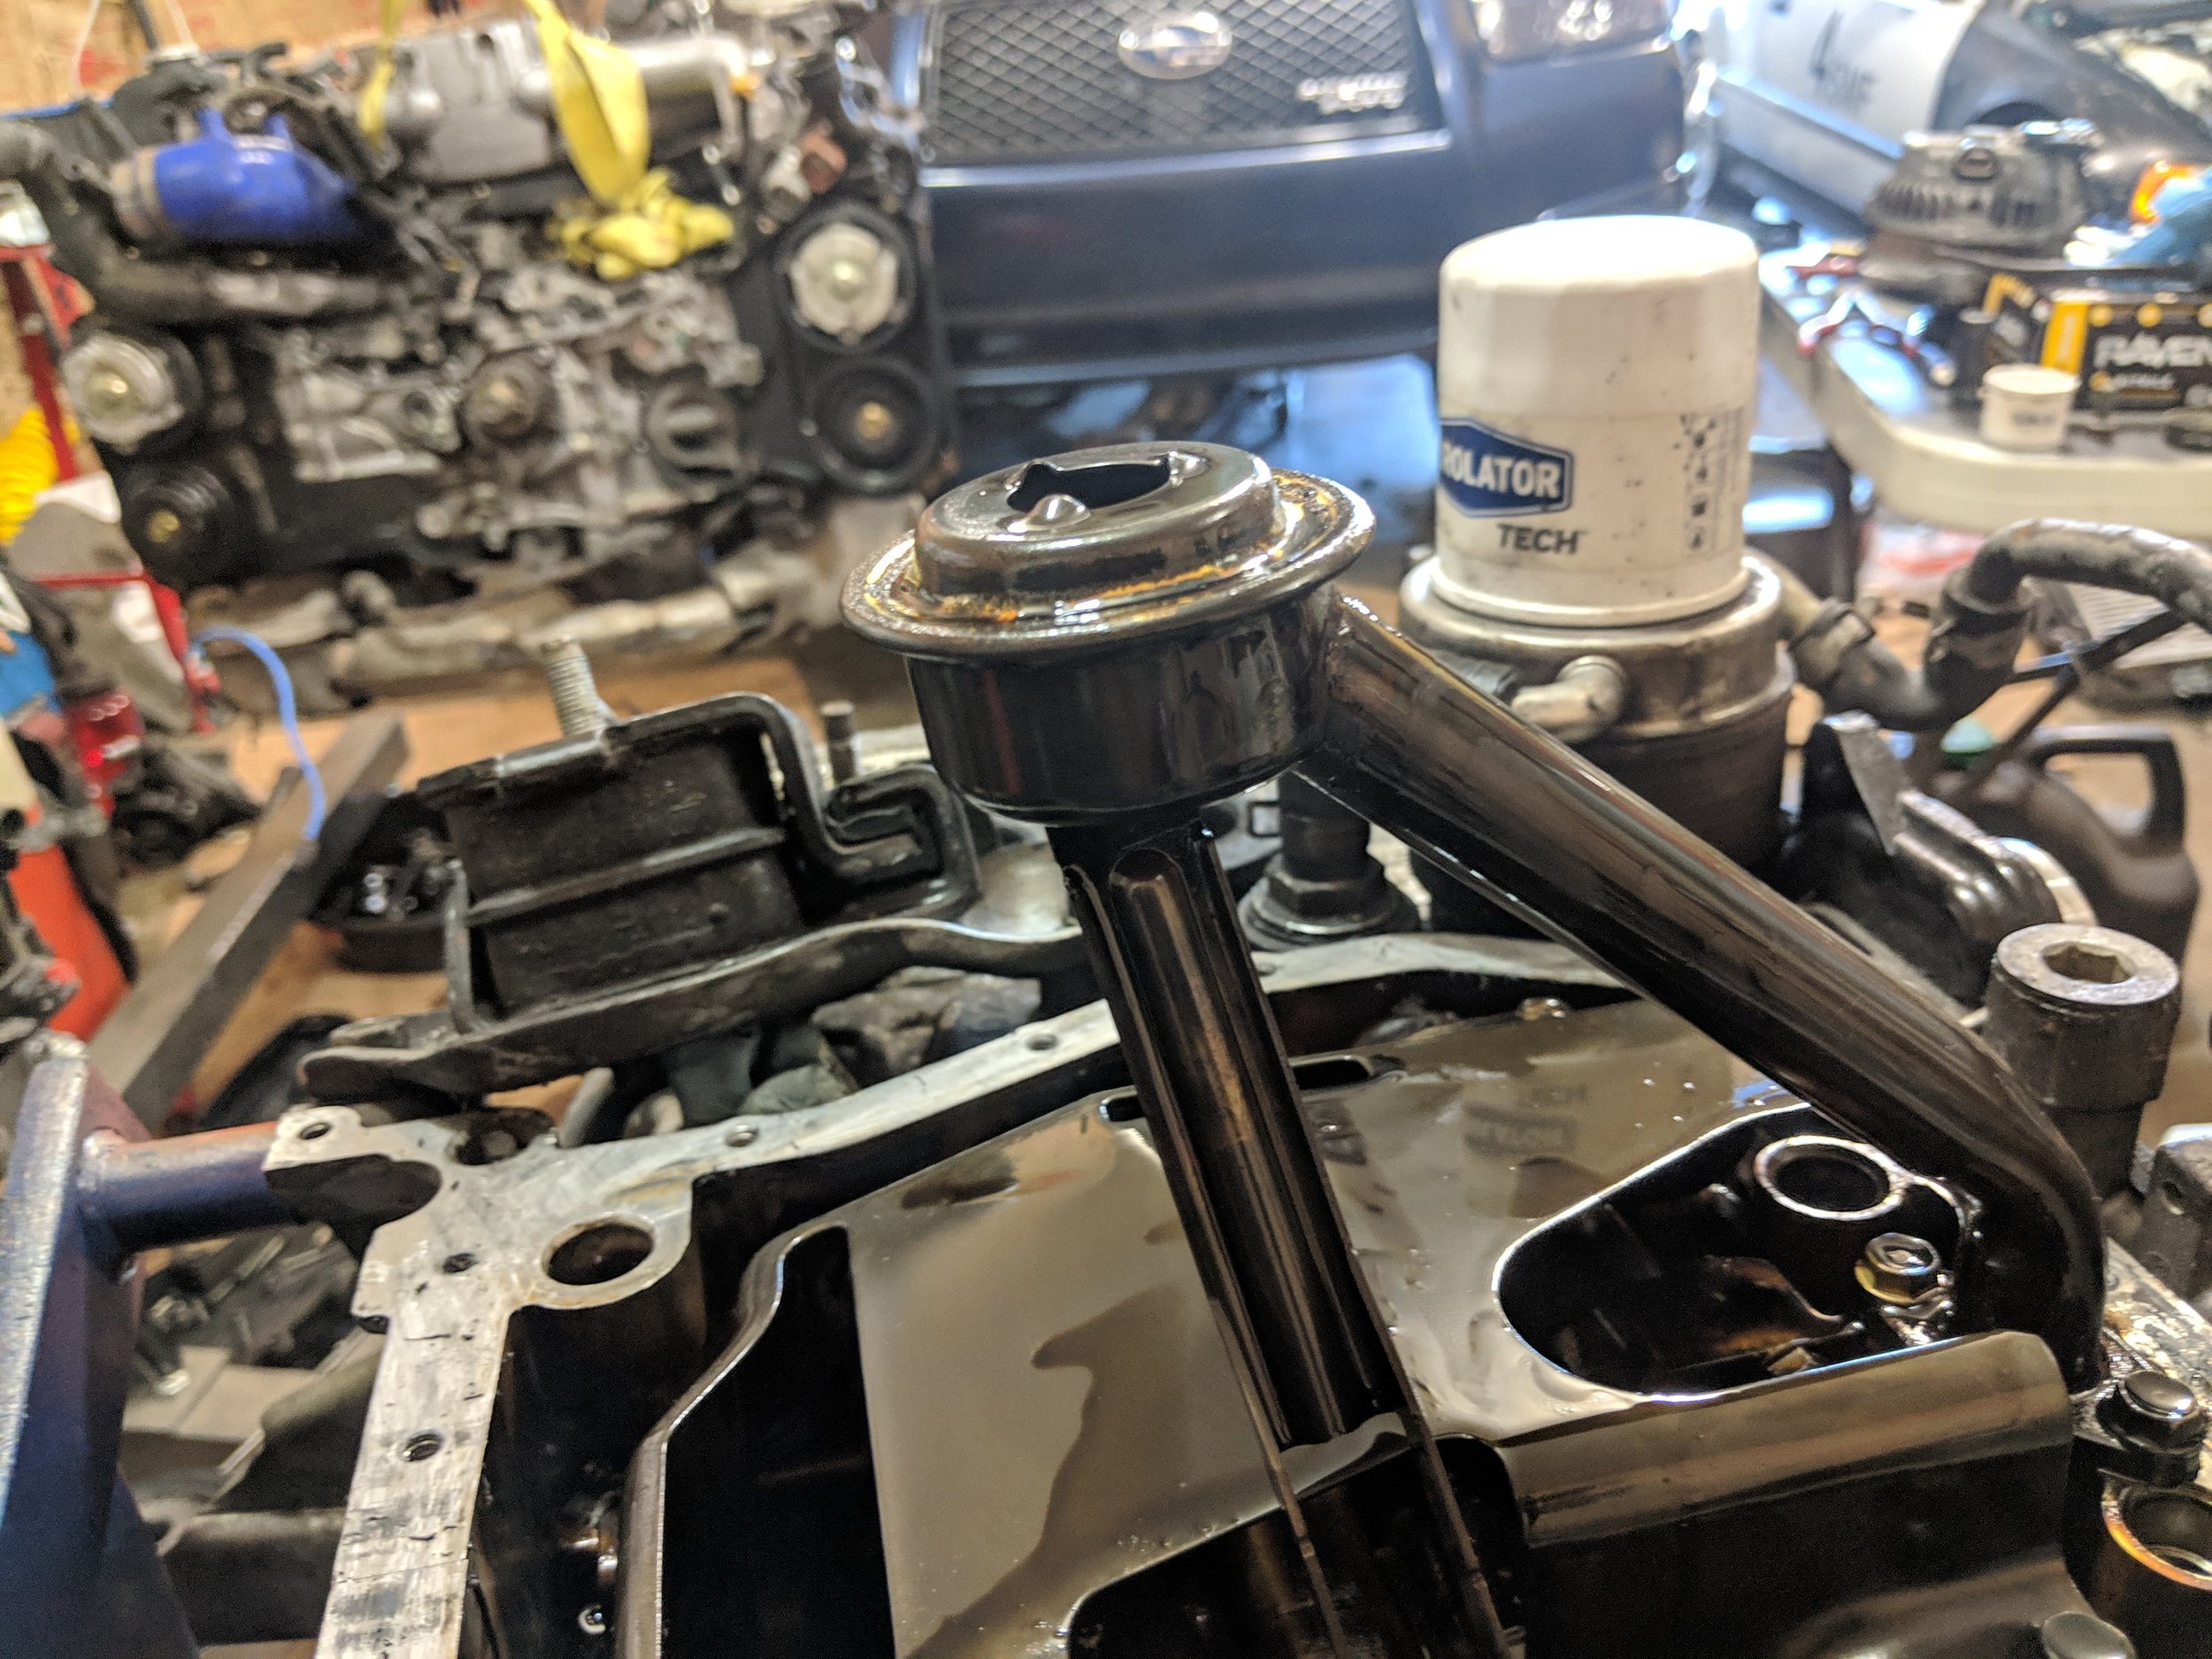 The factory pickup in all its glory. The right side is where the known braze can split and cause a lack of oil pressure.